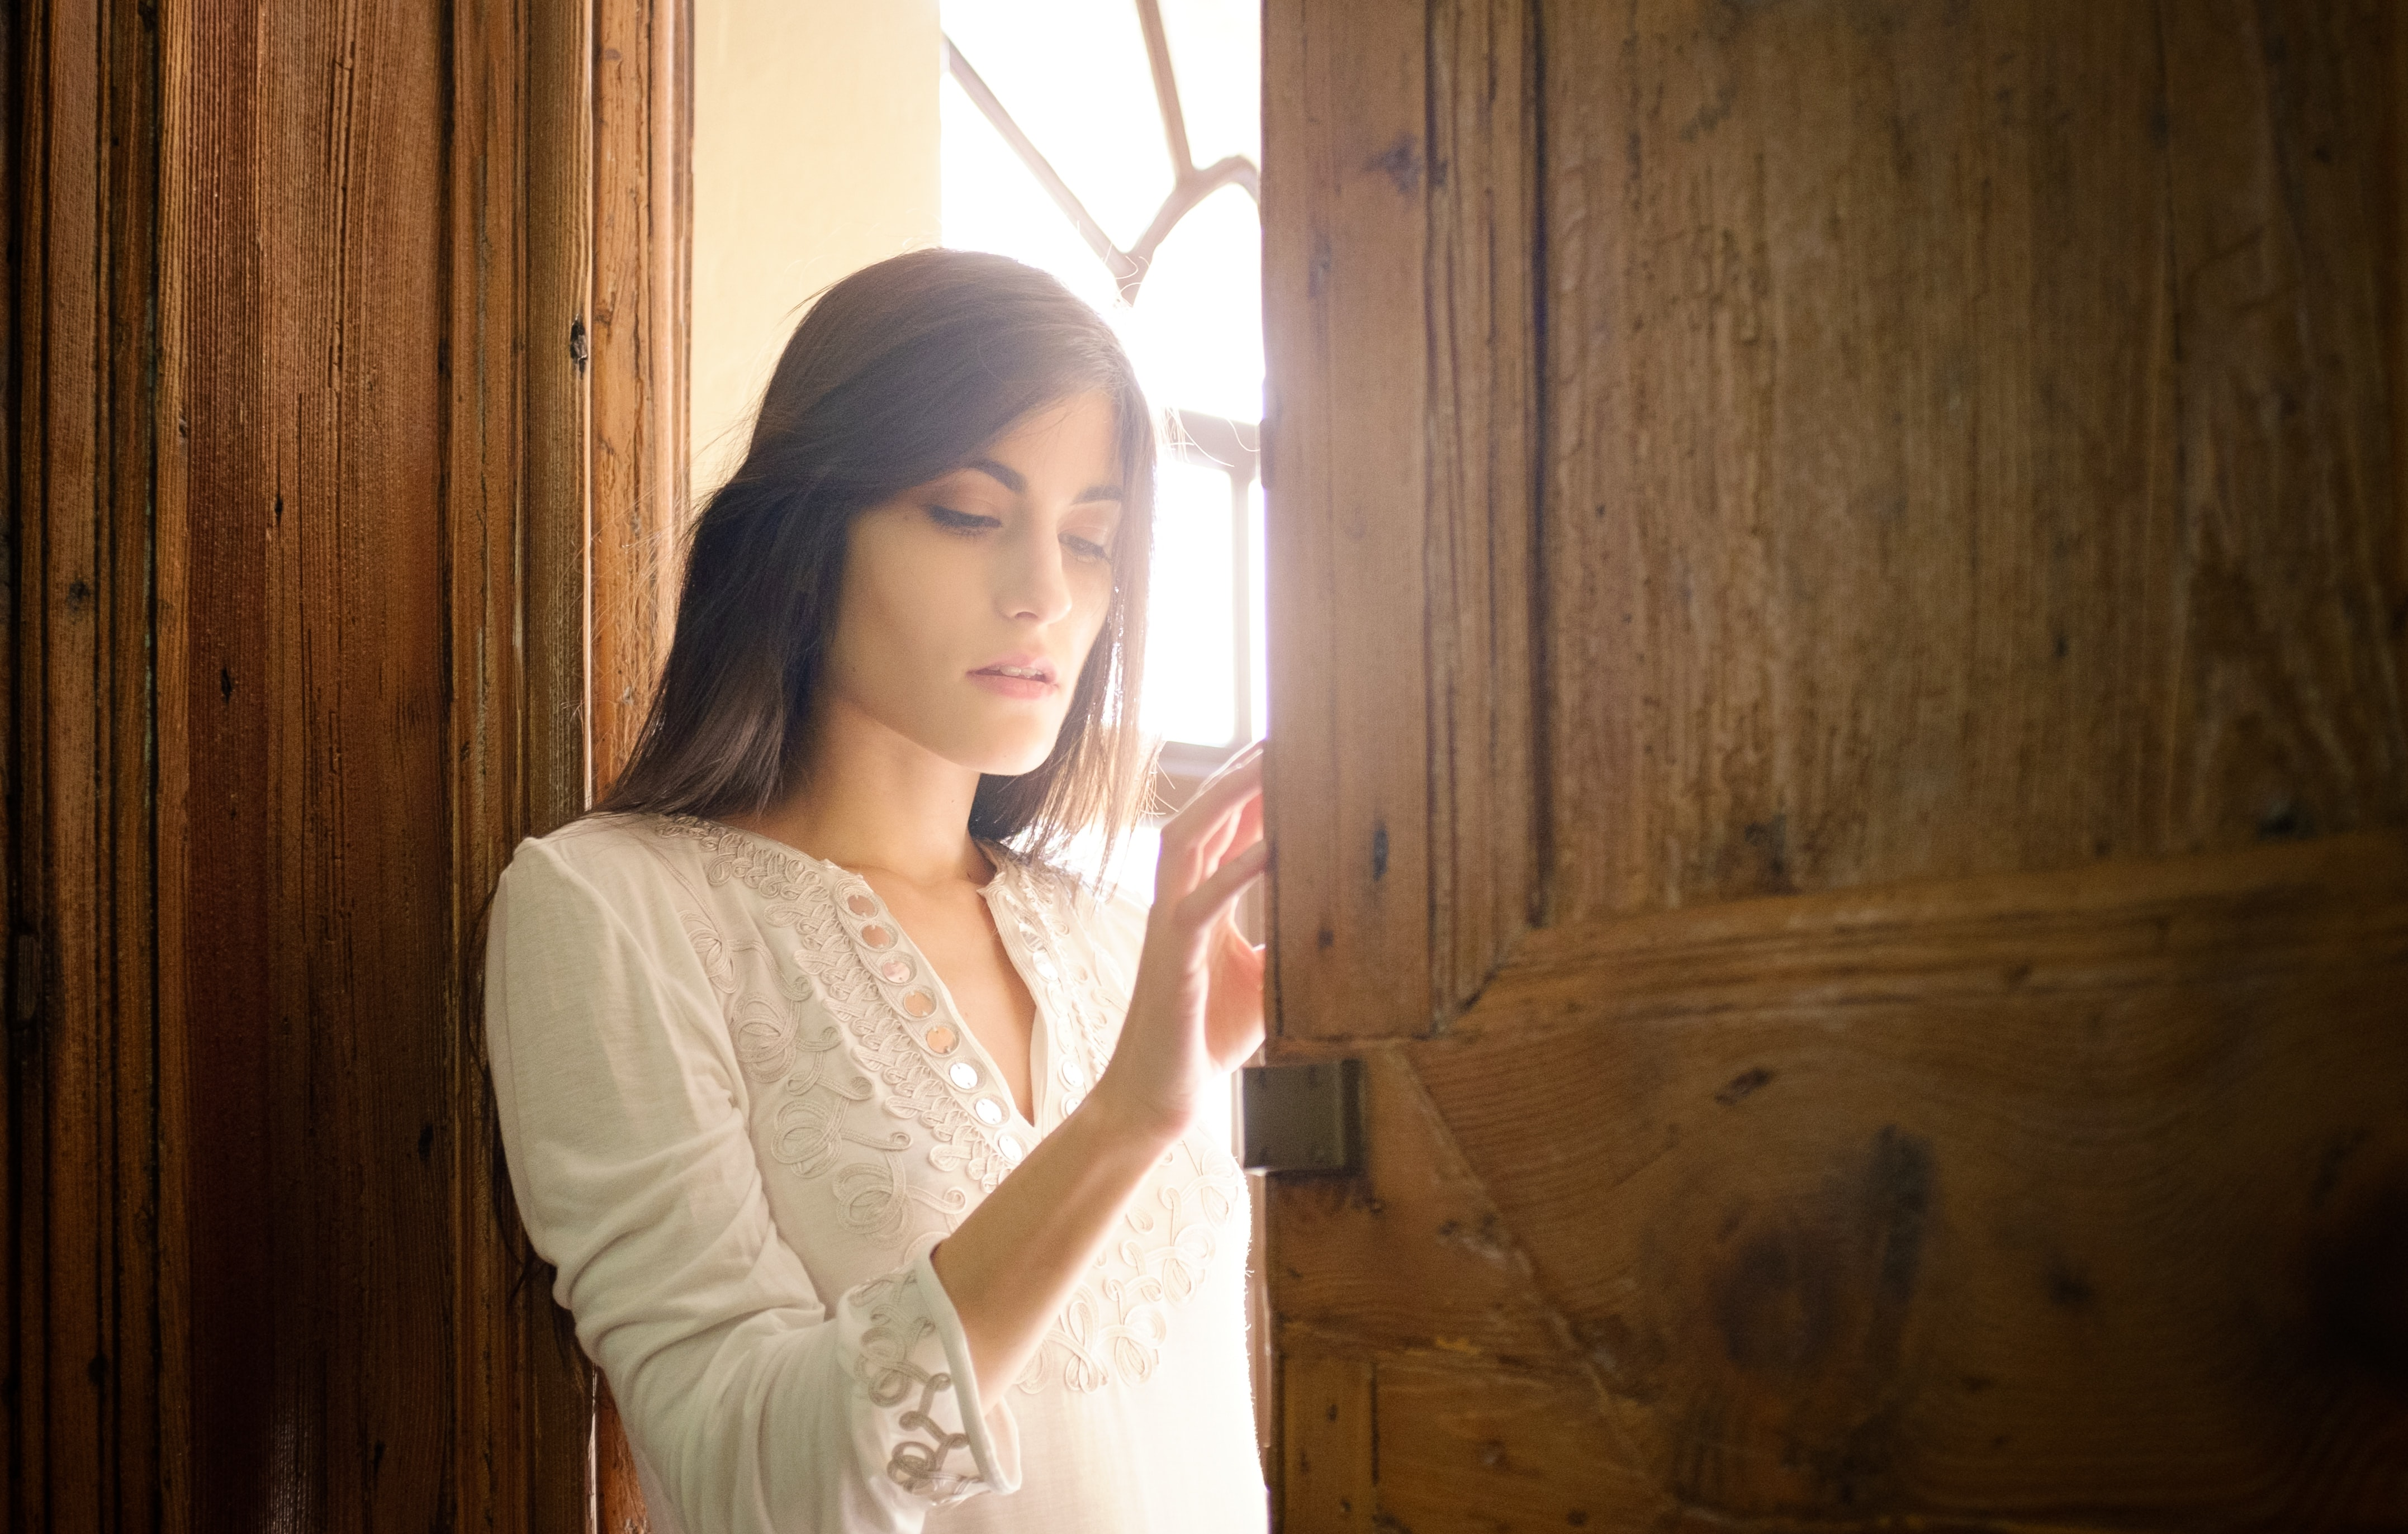 woman leaning on brown wooden door frame